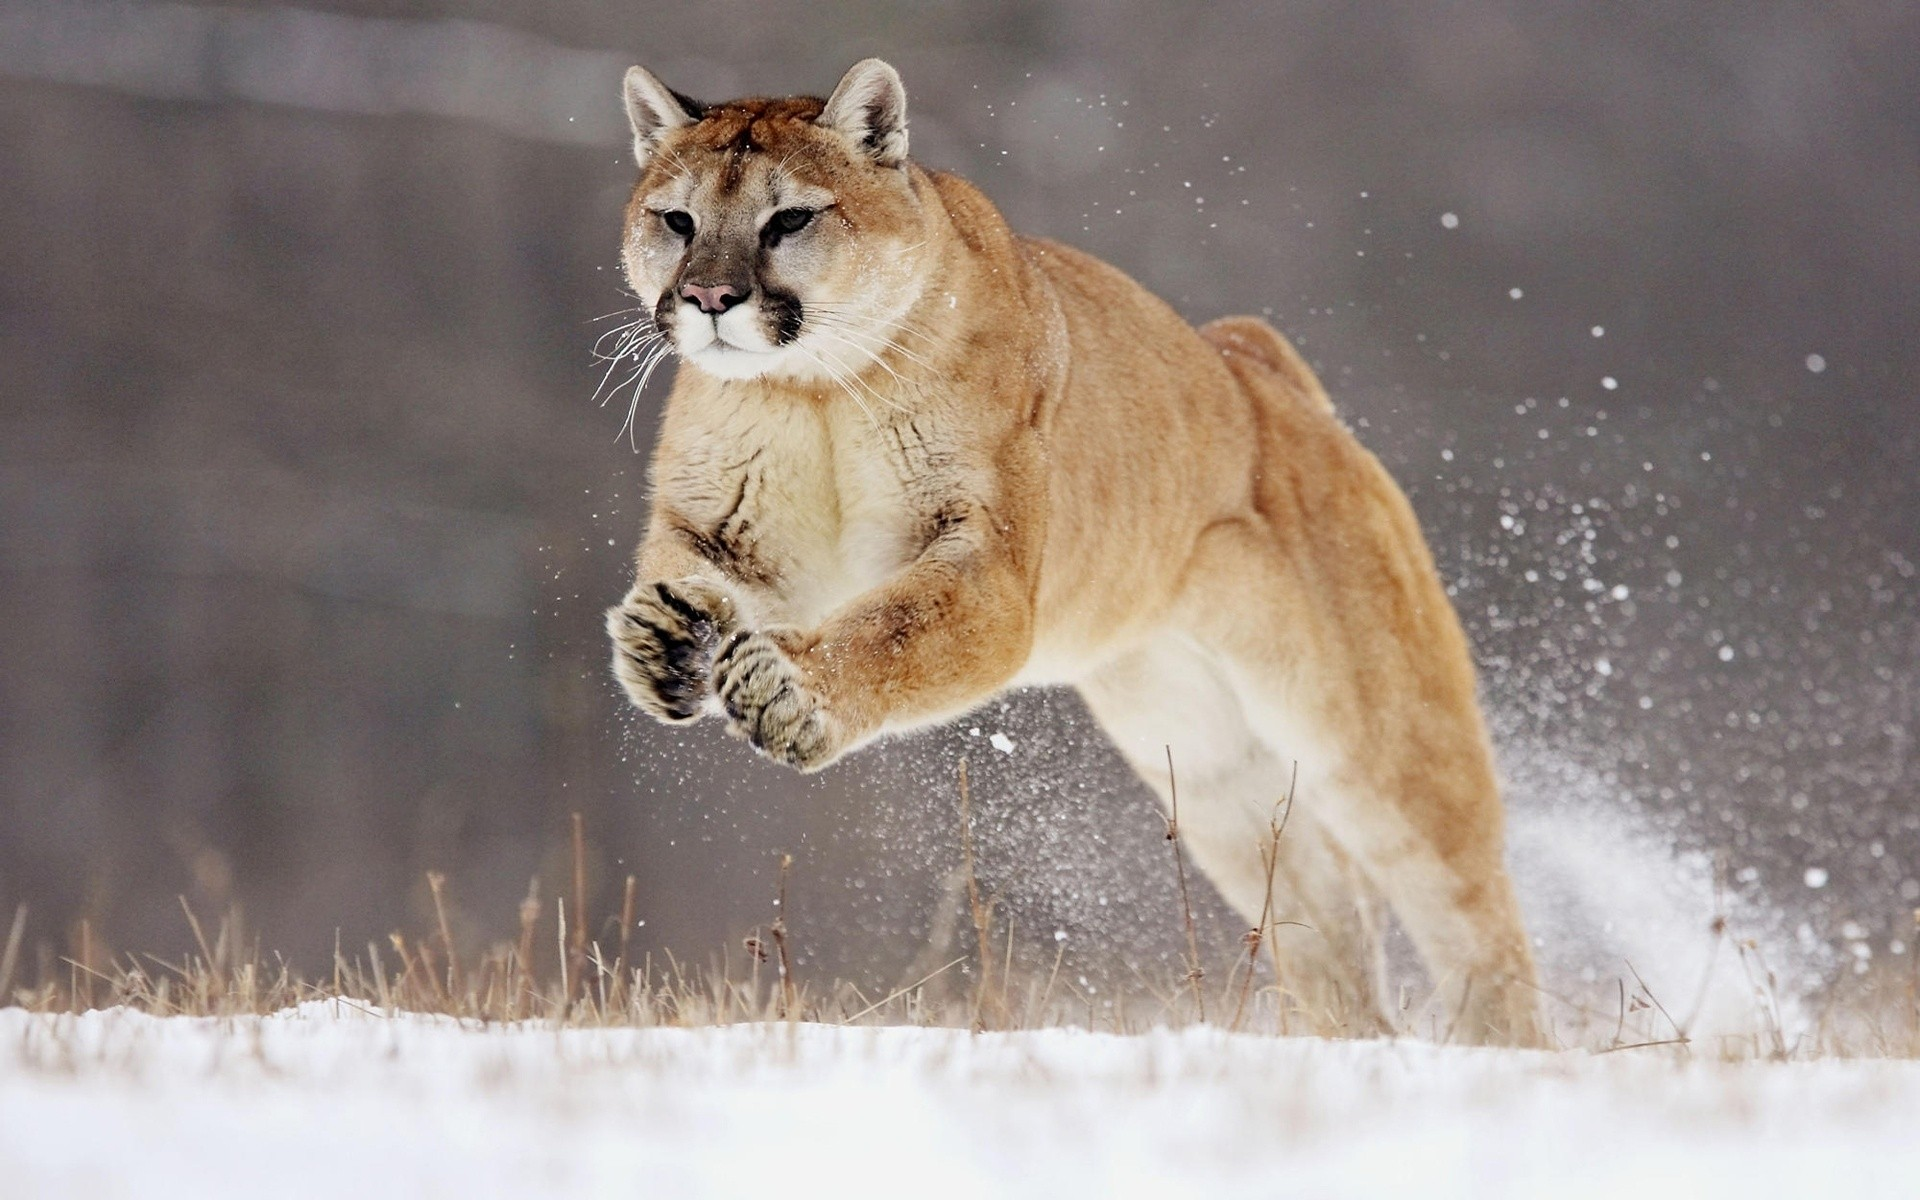 animals cat mammal wildlife snow winter nature outdoors animal predator portrait puma